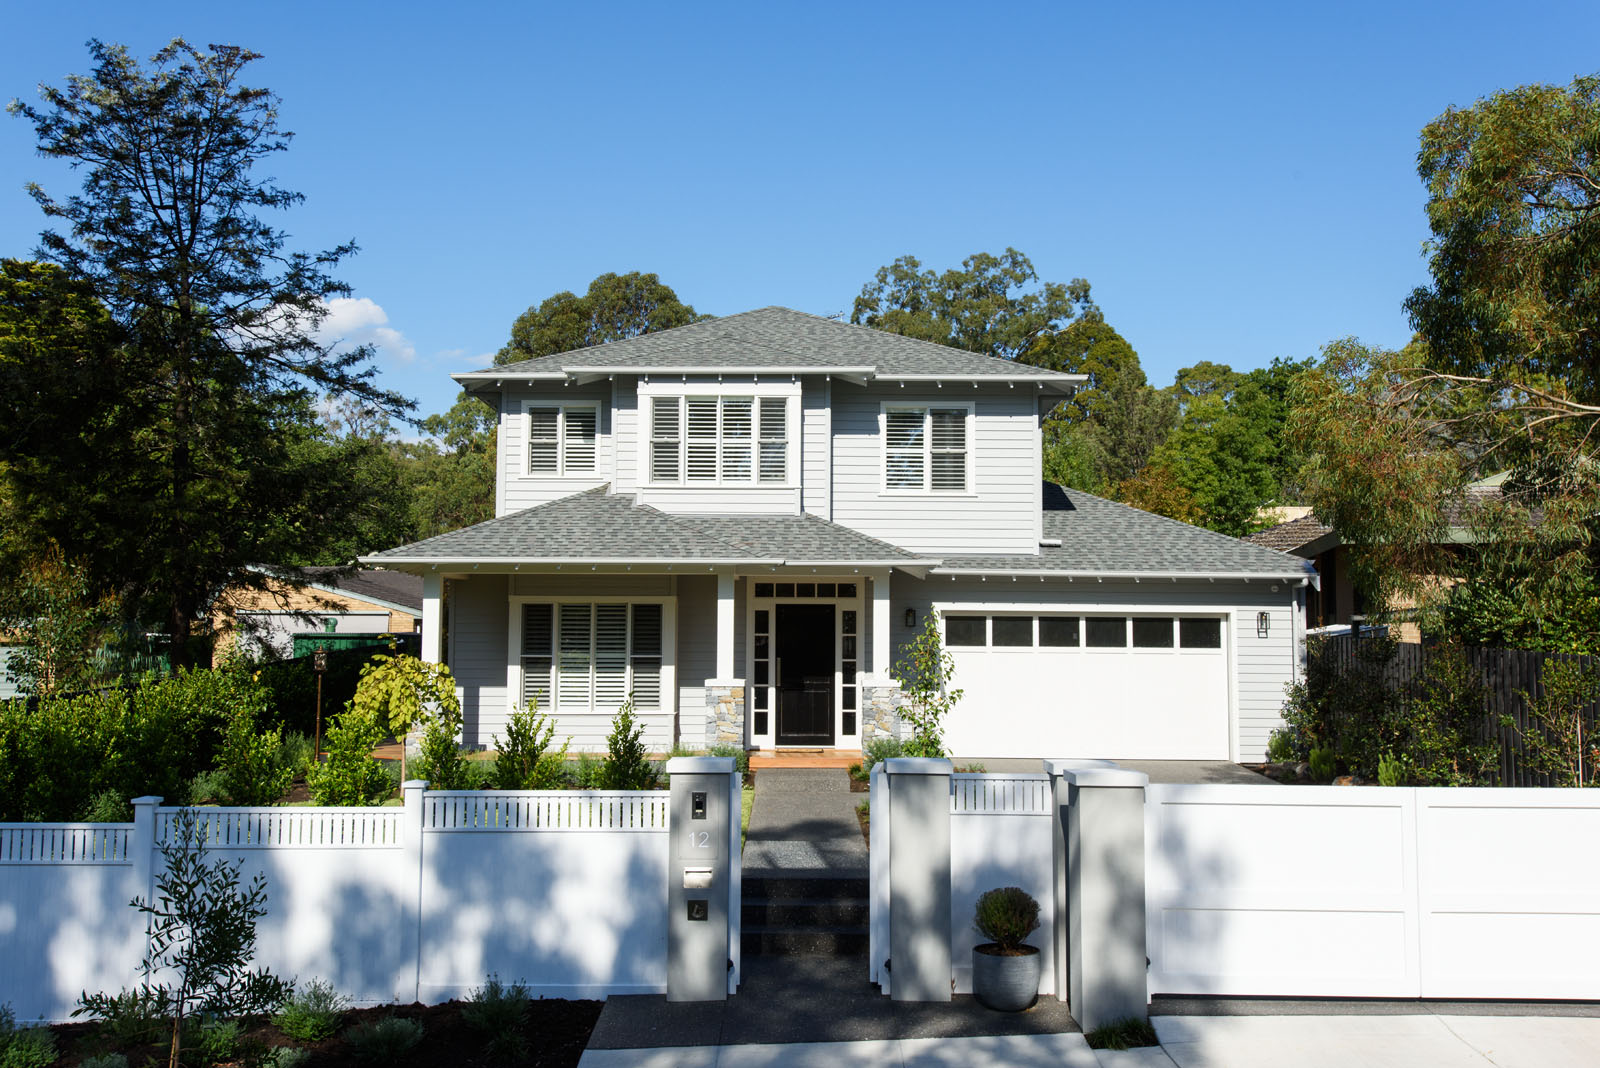 When purchasing a high-end home, do get acquainted with the location